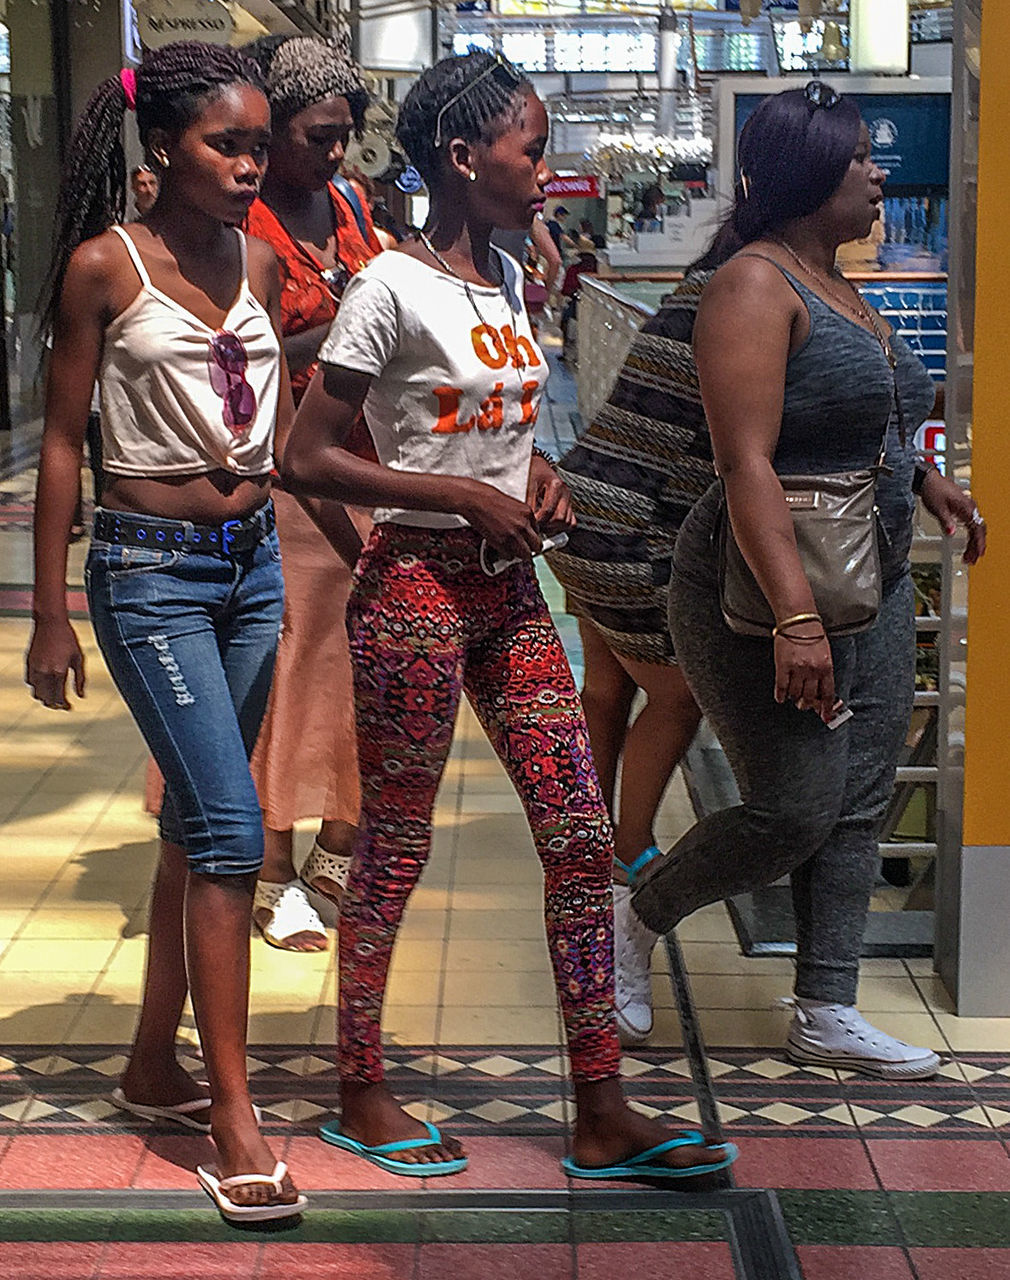 young women, young adult, real people, full length, casual clothing, standing, lifestyles, fashion, city life, leisure activity, women, day, outdoors, city, togetherness, friendship, adult, people, adults only